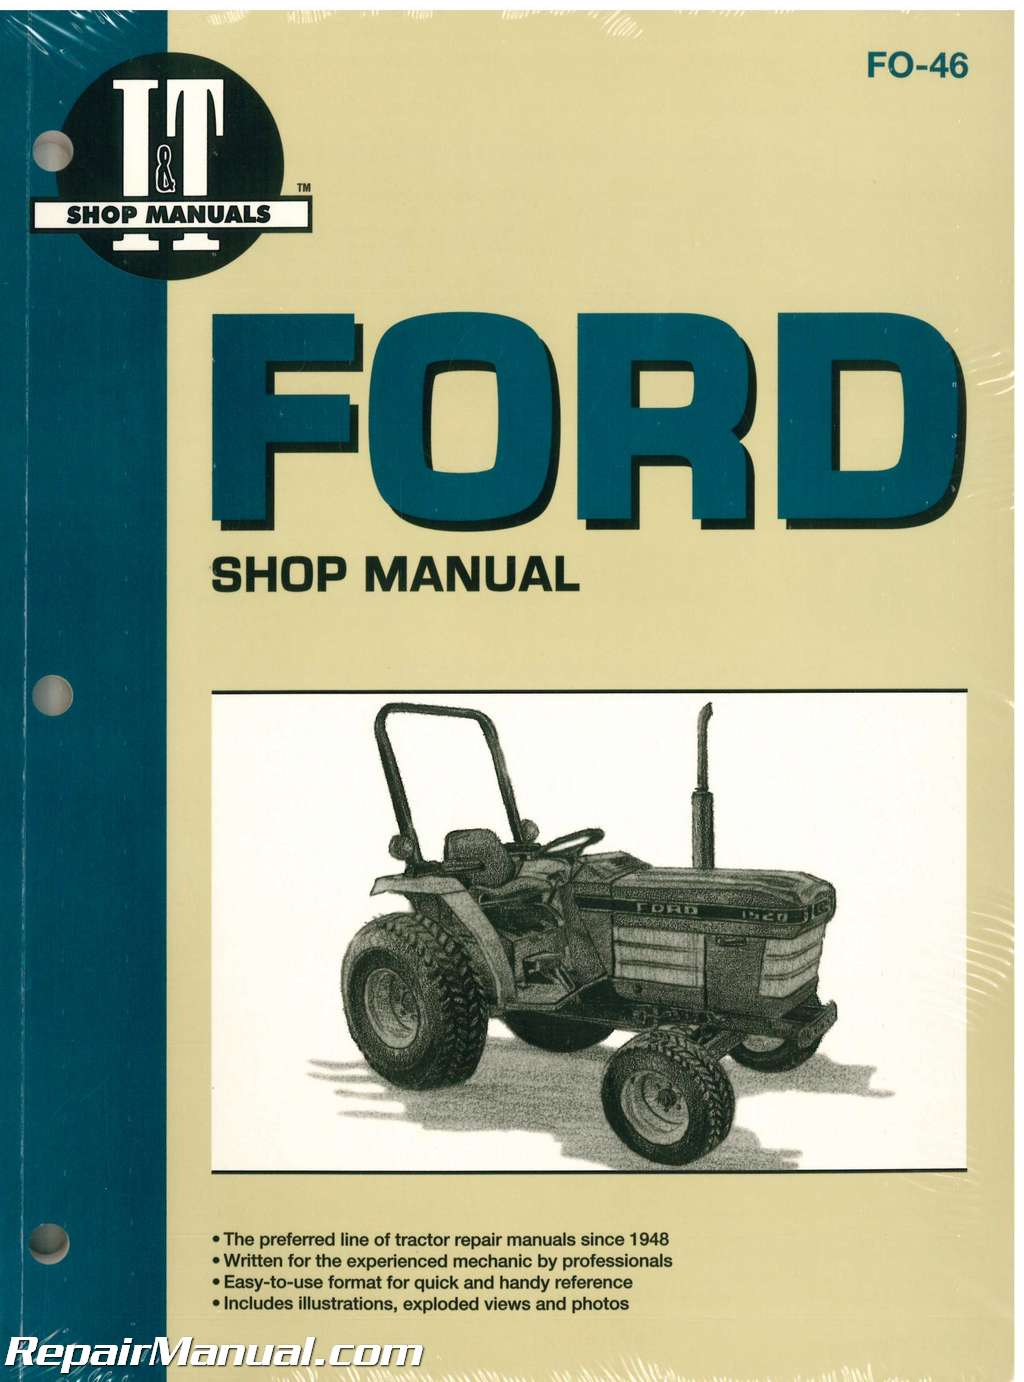 ford new 1120 1220 1320 1520 1720 1920 2120 tractor manual fo 46 ebay